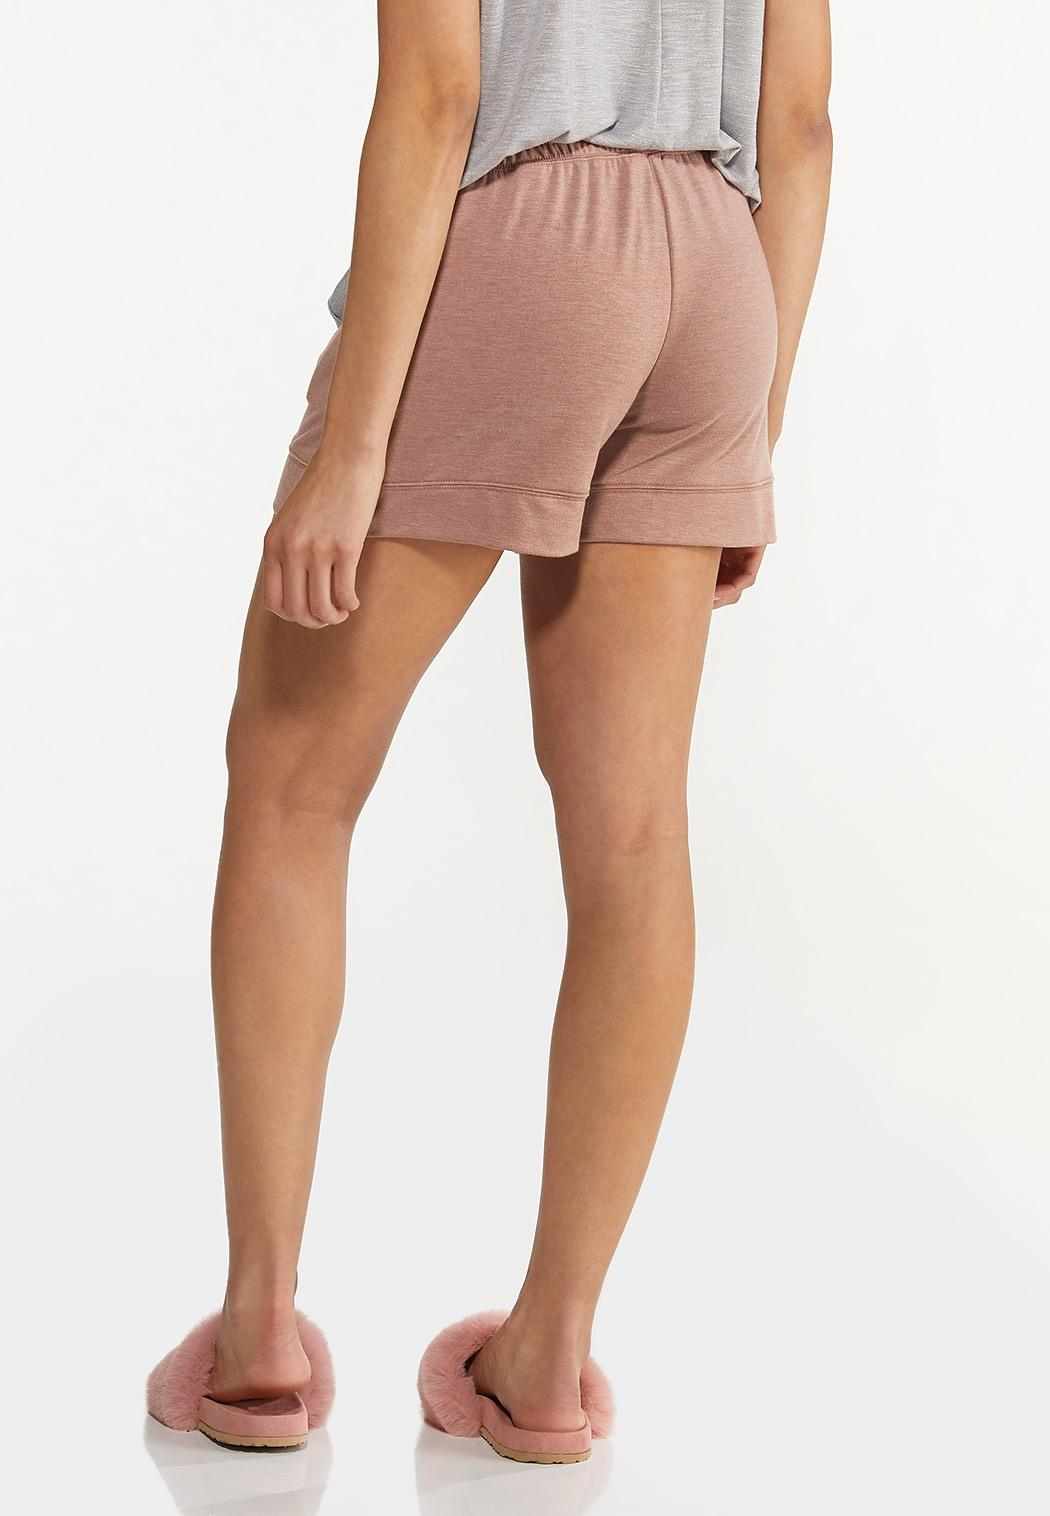 French Terry Shorts (Item #44613257)